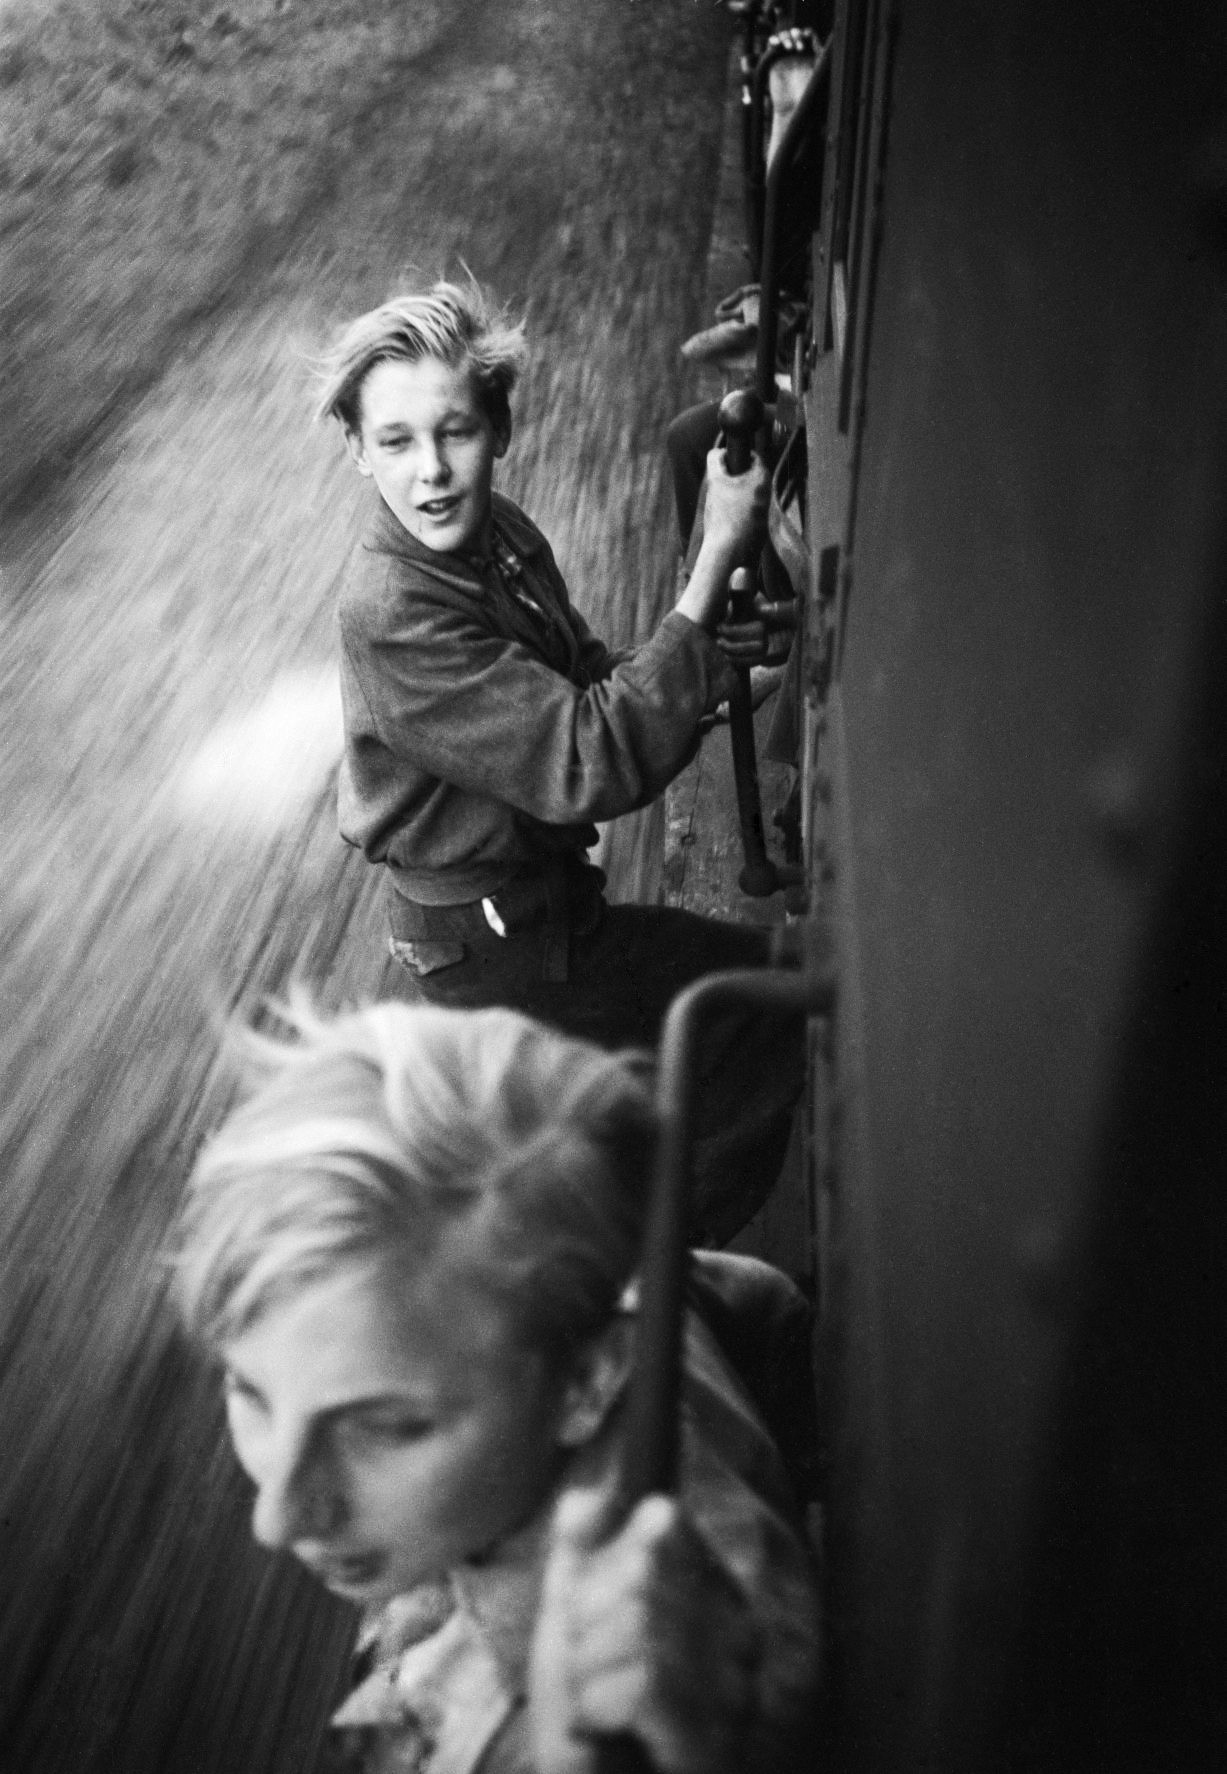 children hanging on a full train after the liberation, 1945 photo by menno huizinga